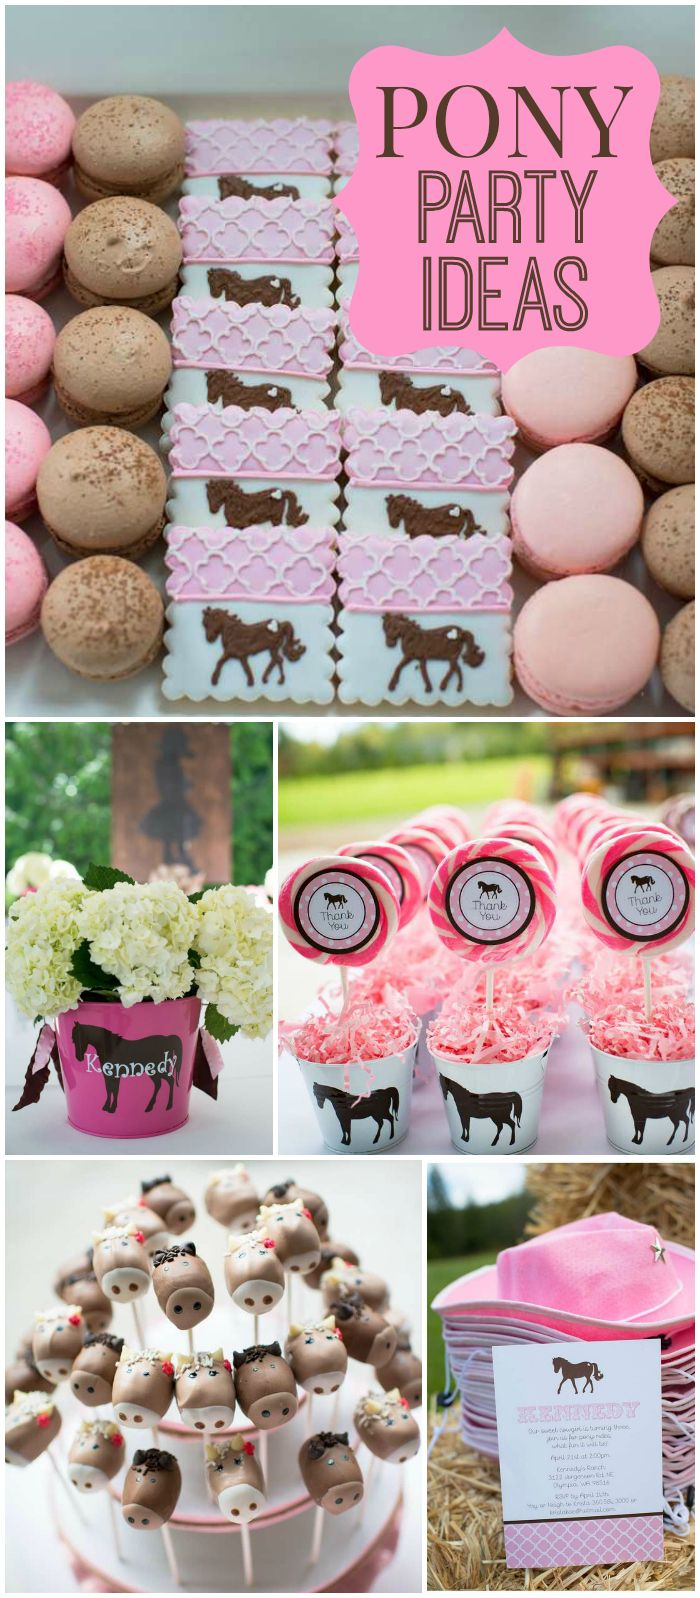 17 Best Ideas About Horse Party Food On Pinterest Horse